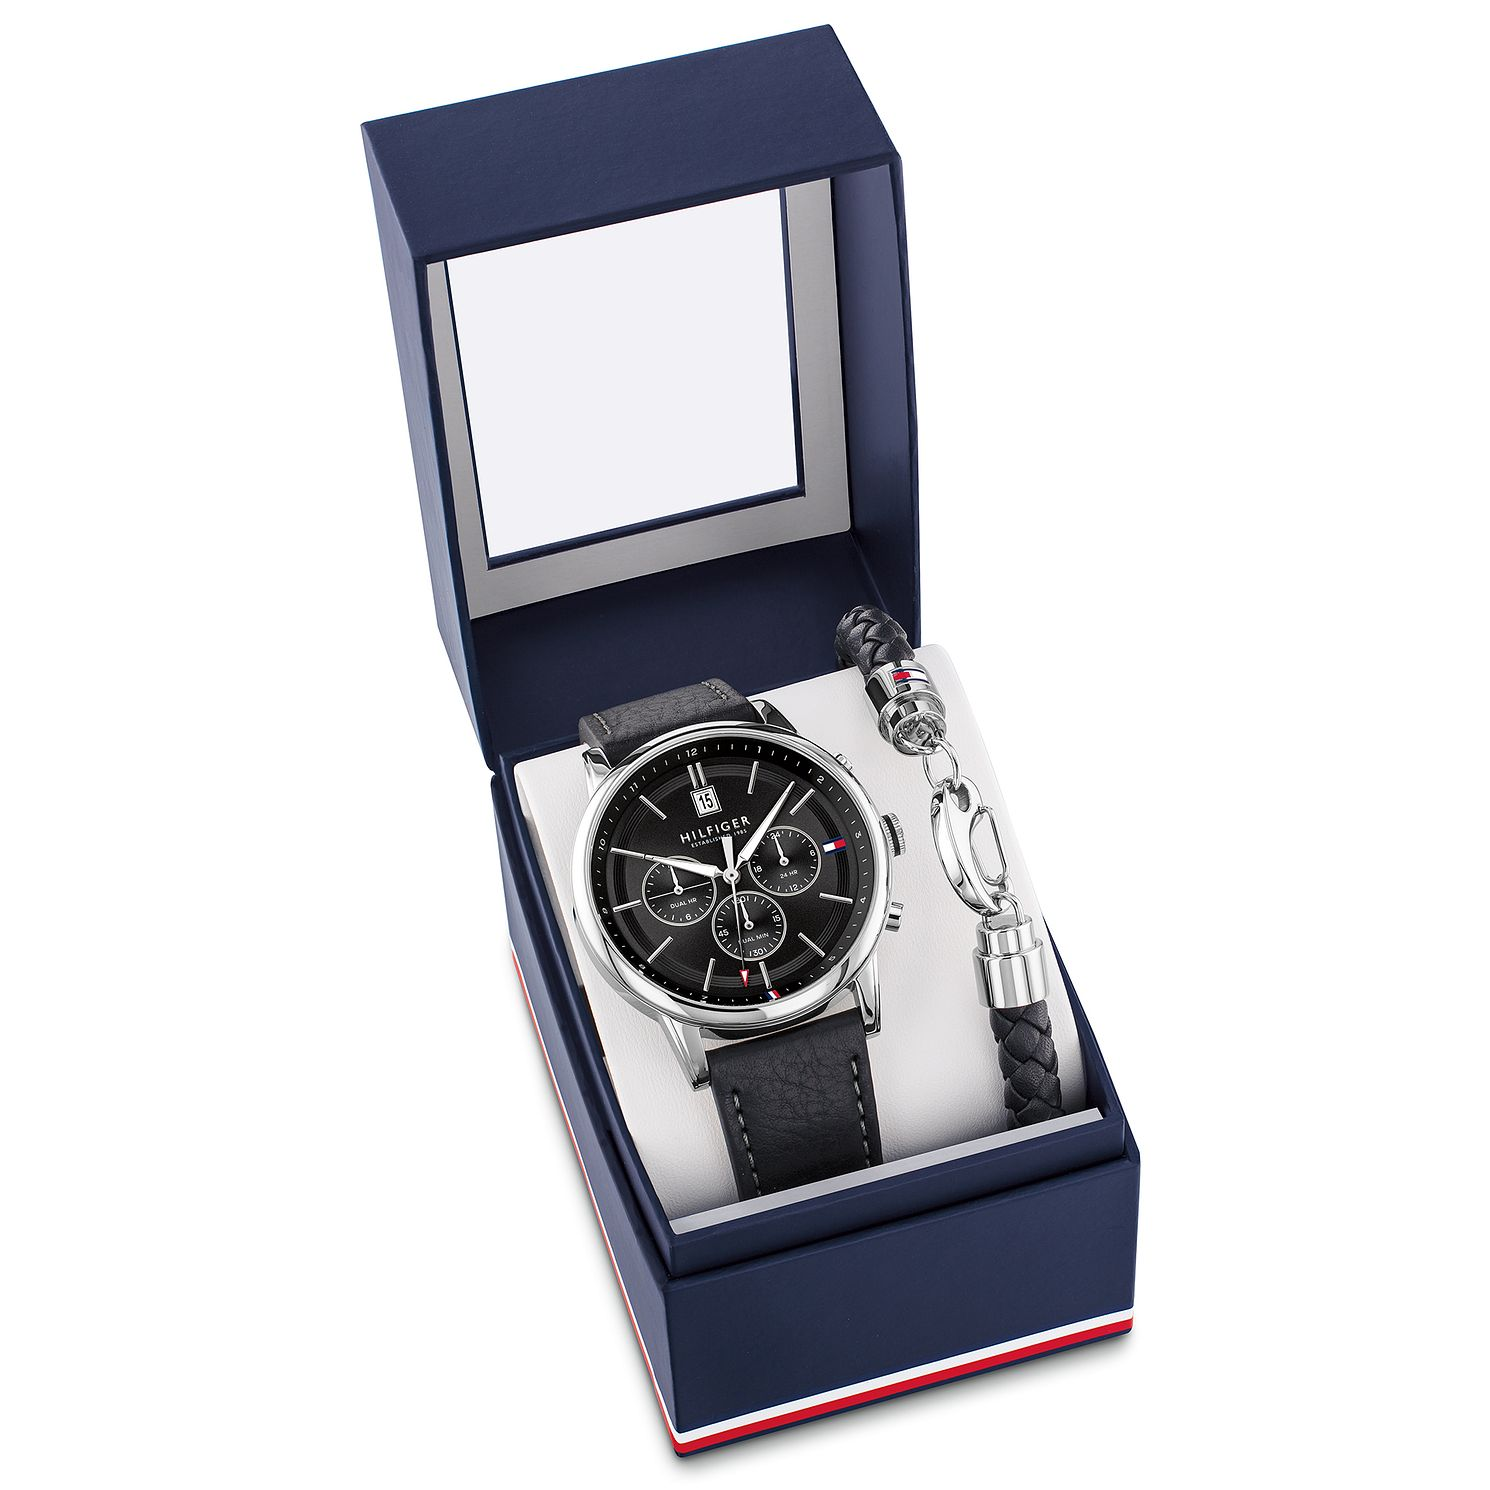 Tommy Hilfiger Men's Black Leather Watch & Bracelet Gift Set - Product number 5058503